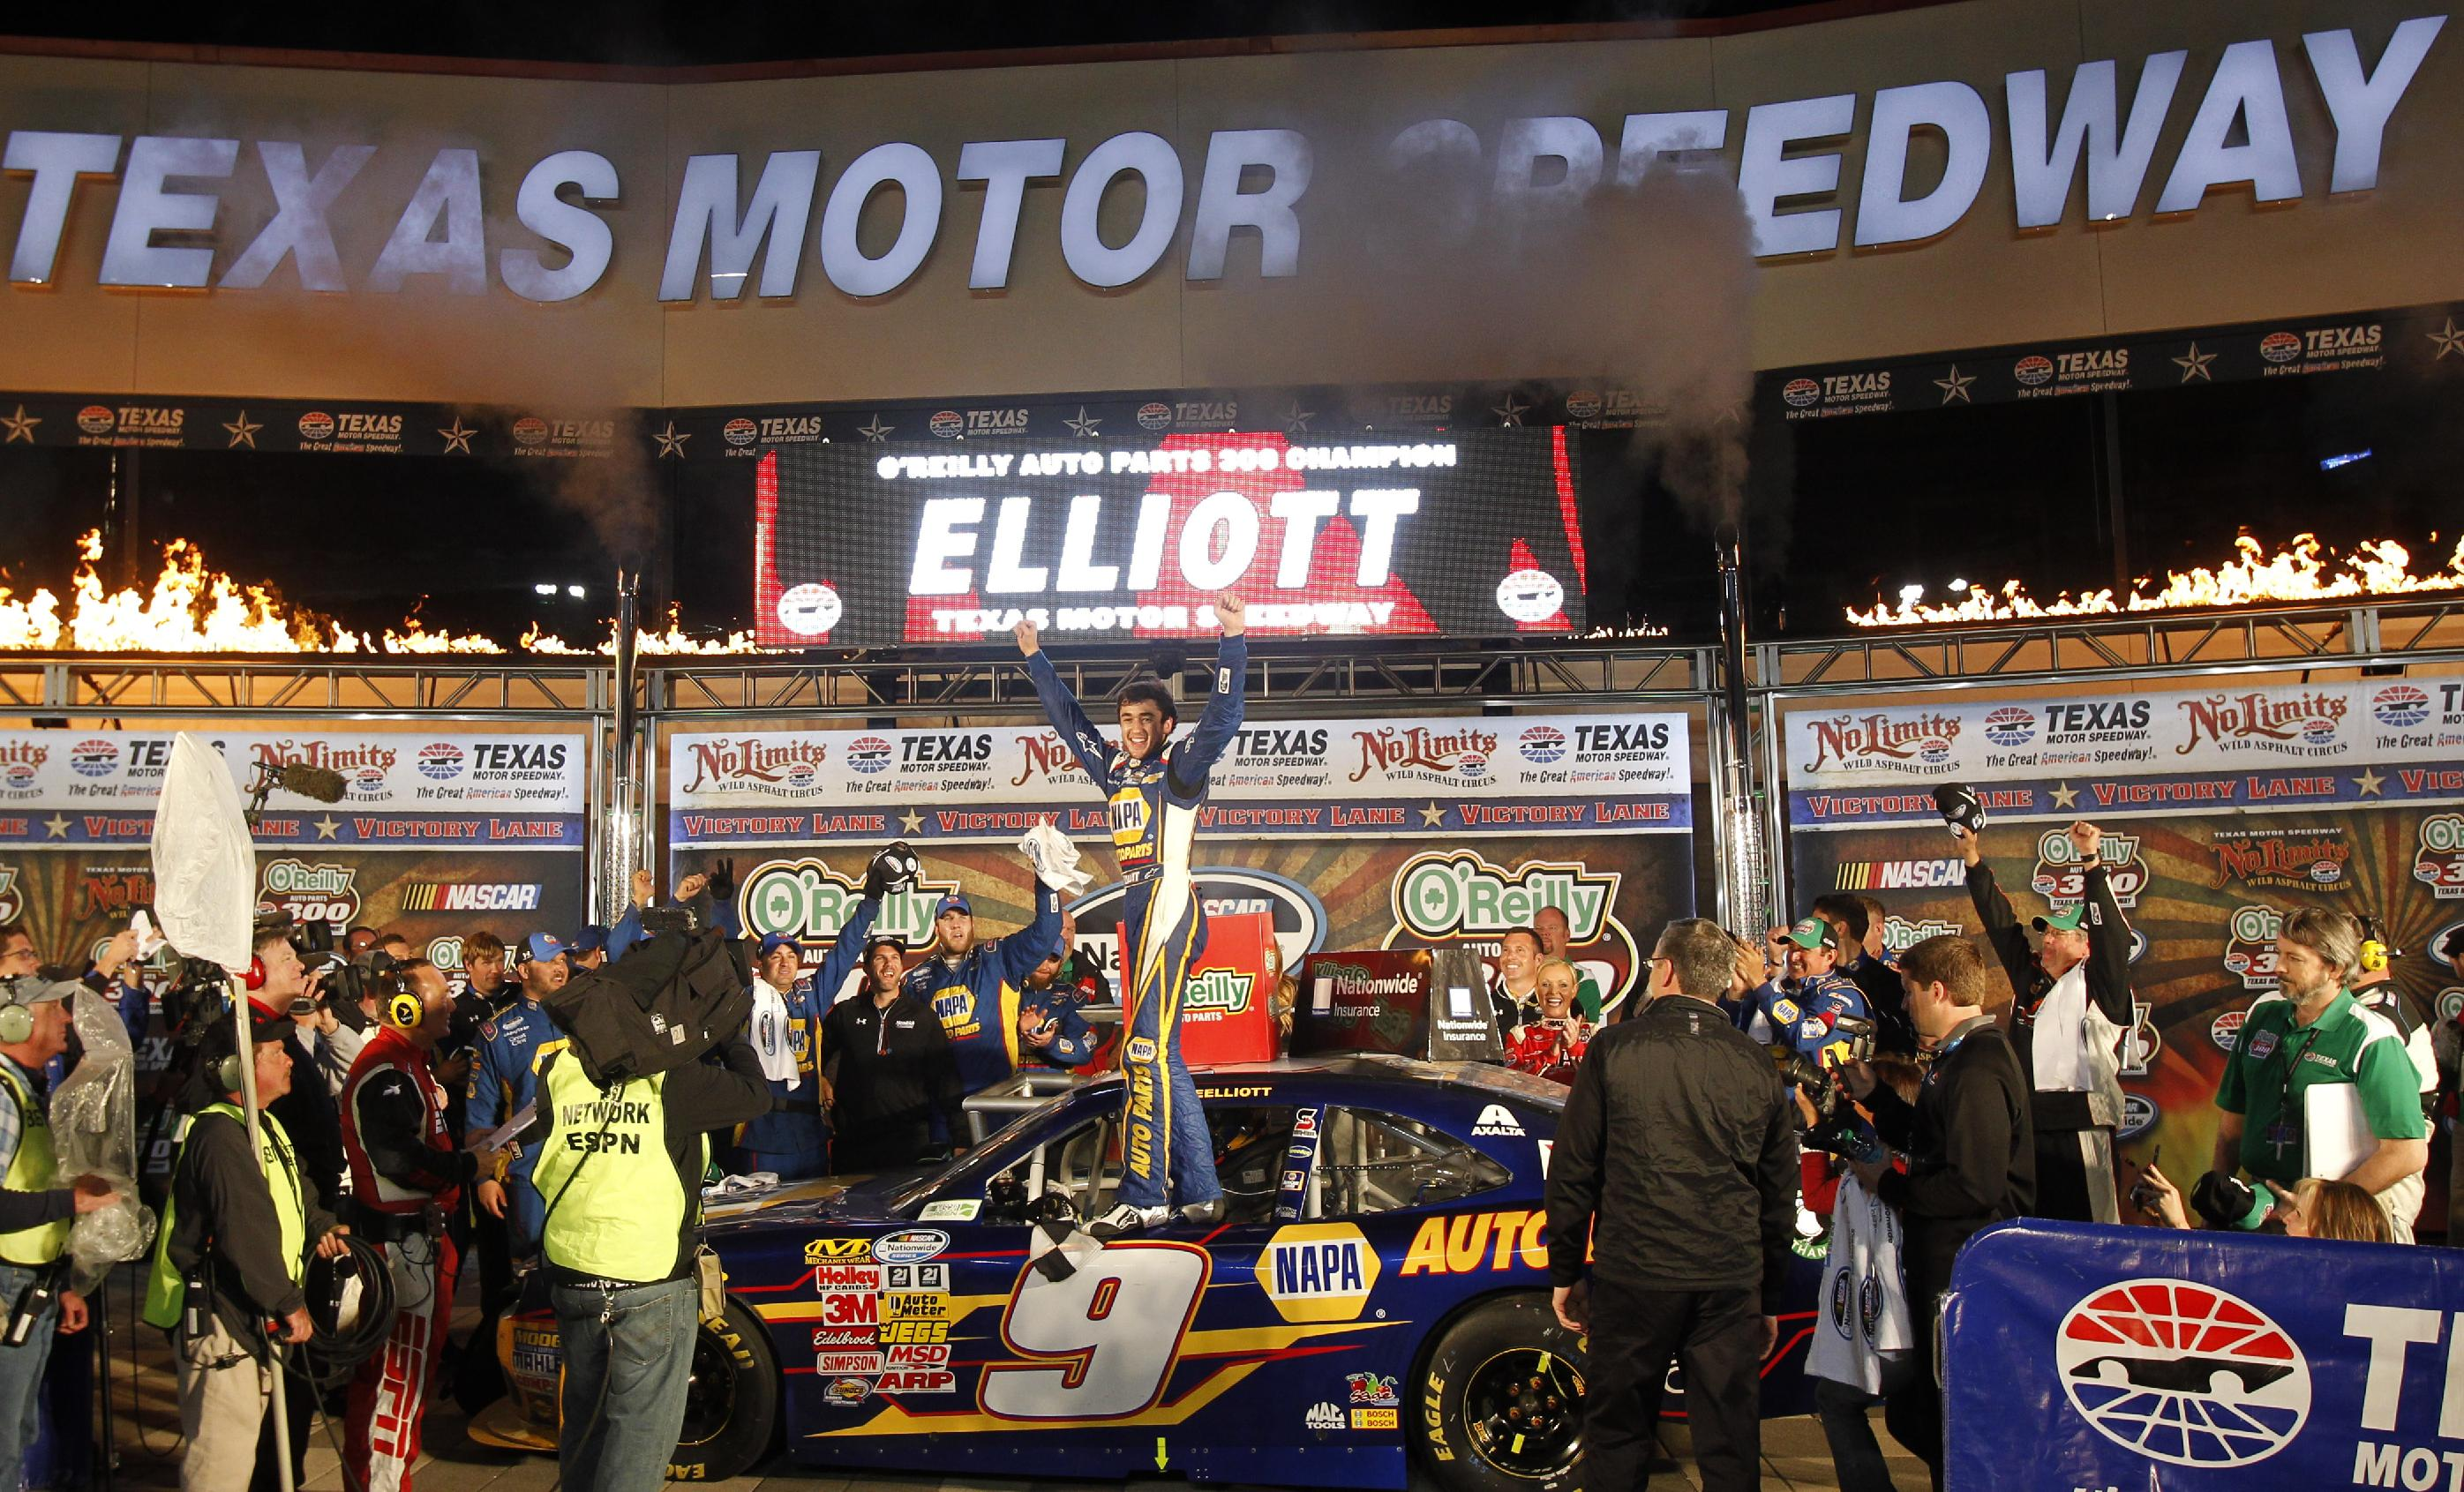 Chase Elliott celebrates his win in the NASCAR Nationwide Series auto race at Texas Motor Speedway in Fort Worth, Texas, Friday, April 4, 2014. (AP Photo/Larry Papke) AP Photo/Mike Stone)